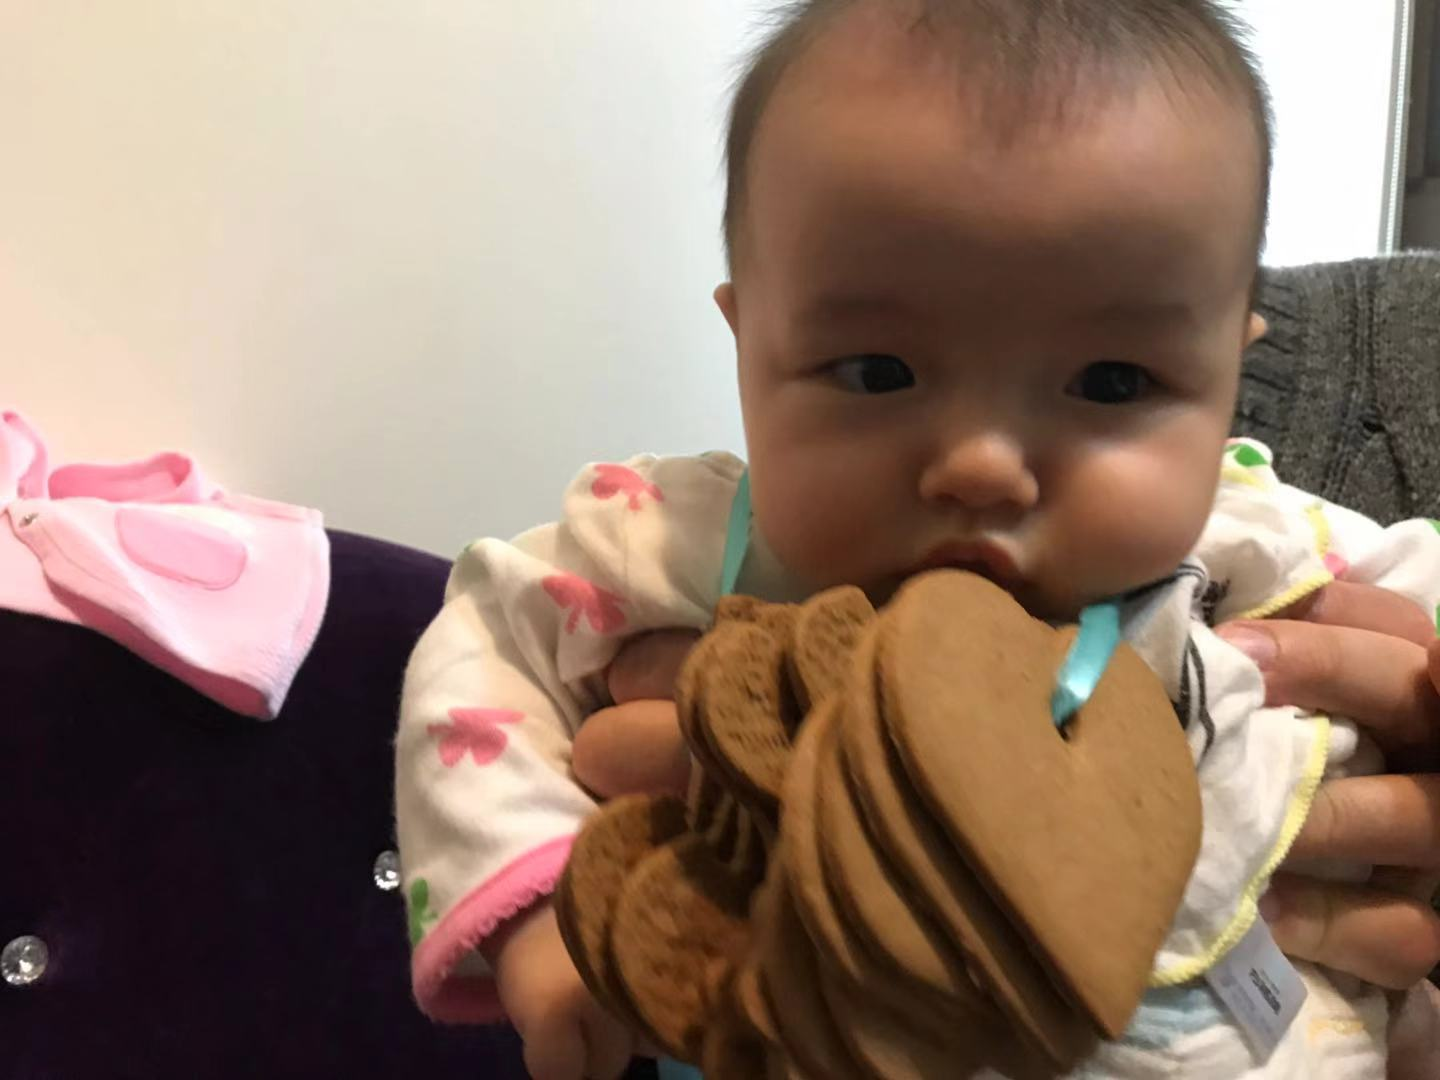 baby pretend to eat cookies